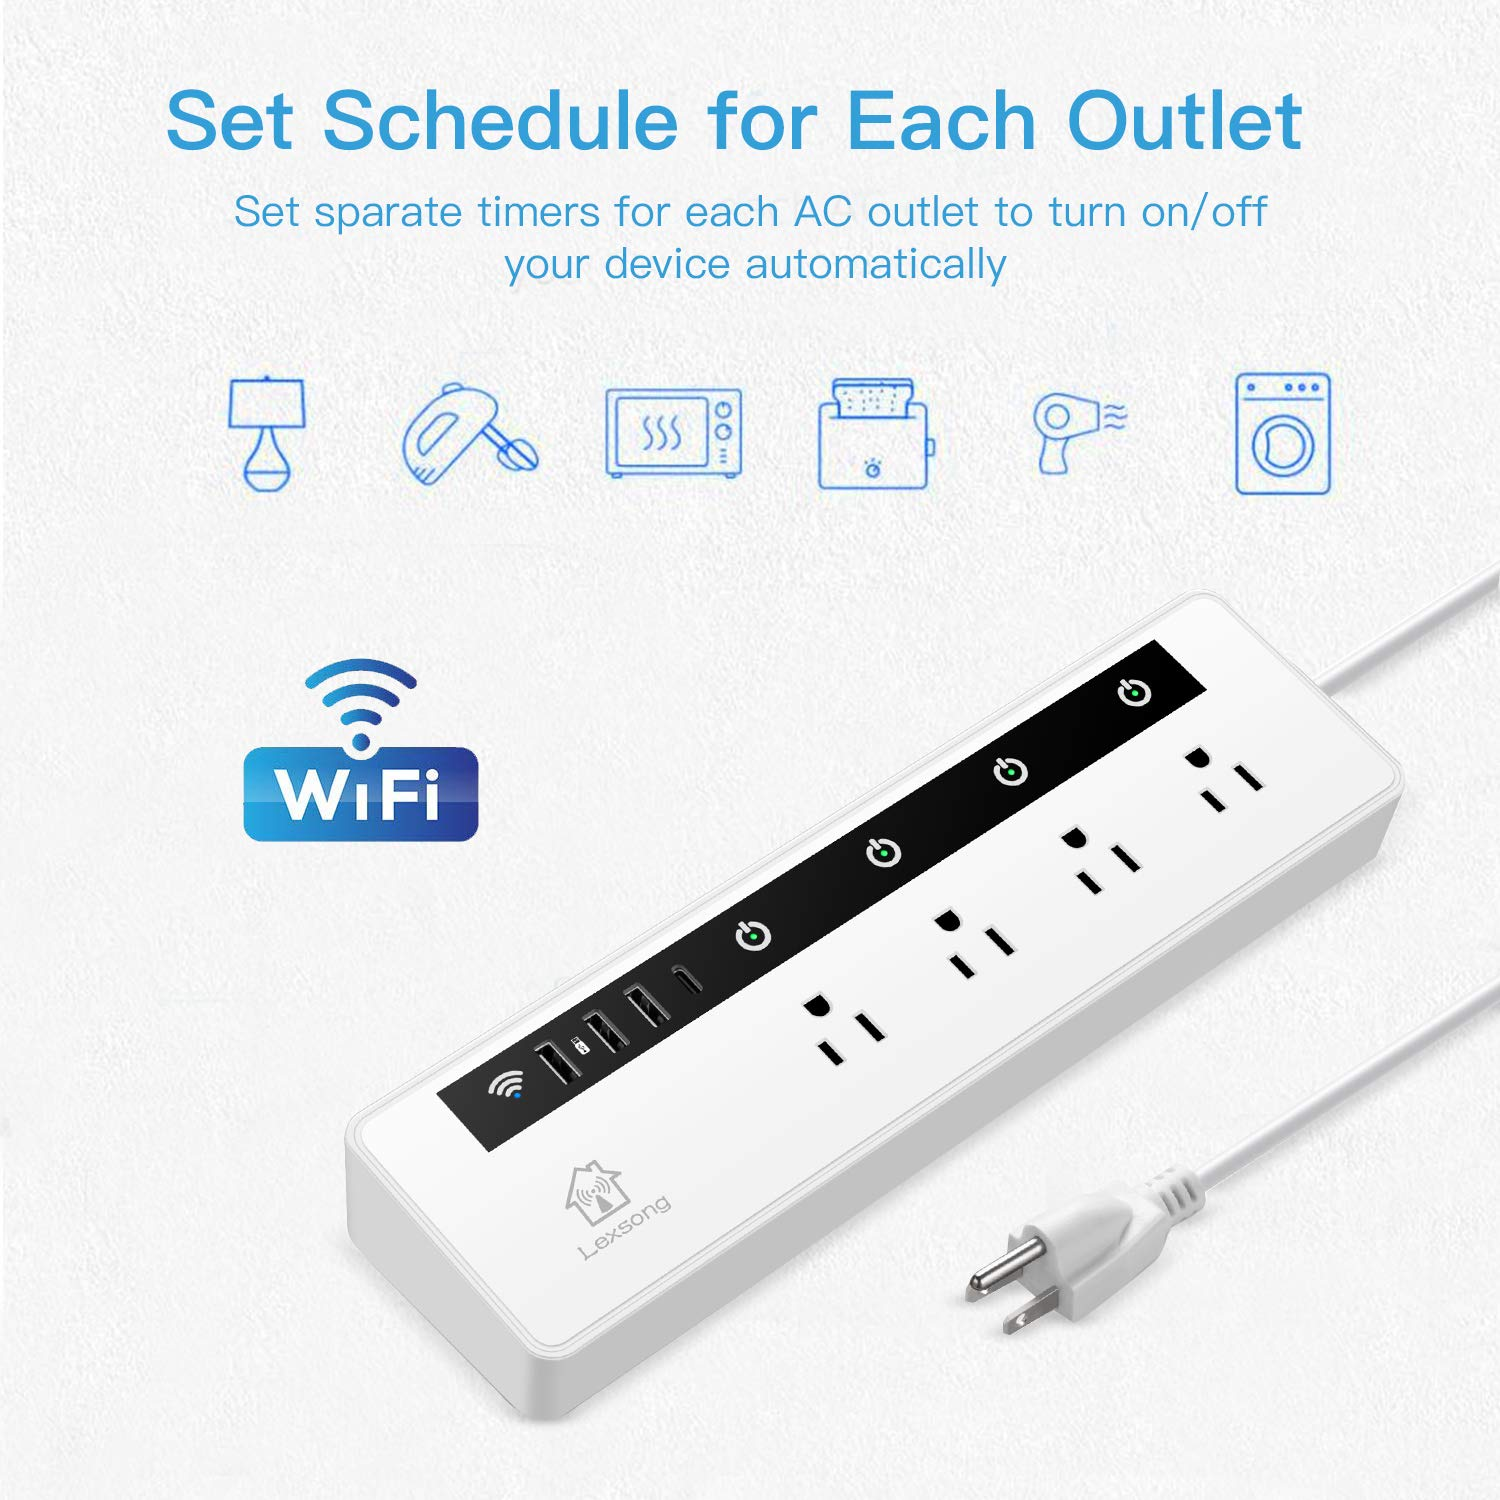 physical touch APP remotecontrol,compatible with Alexa and Google iPhone 1.5 foot extension wire CTUDP L1 voice controls wifi smart plug,3USB interfaces 4remote ac plugs and 1 type-c interface Android